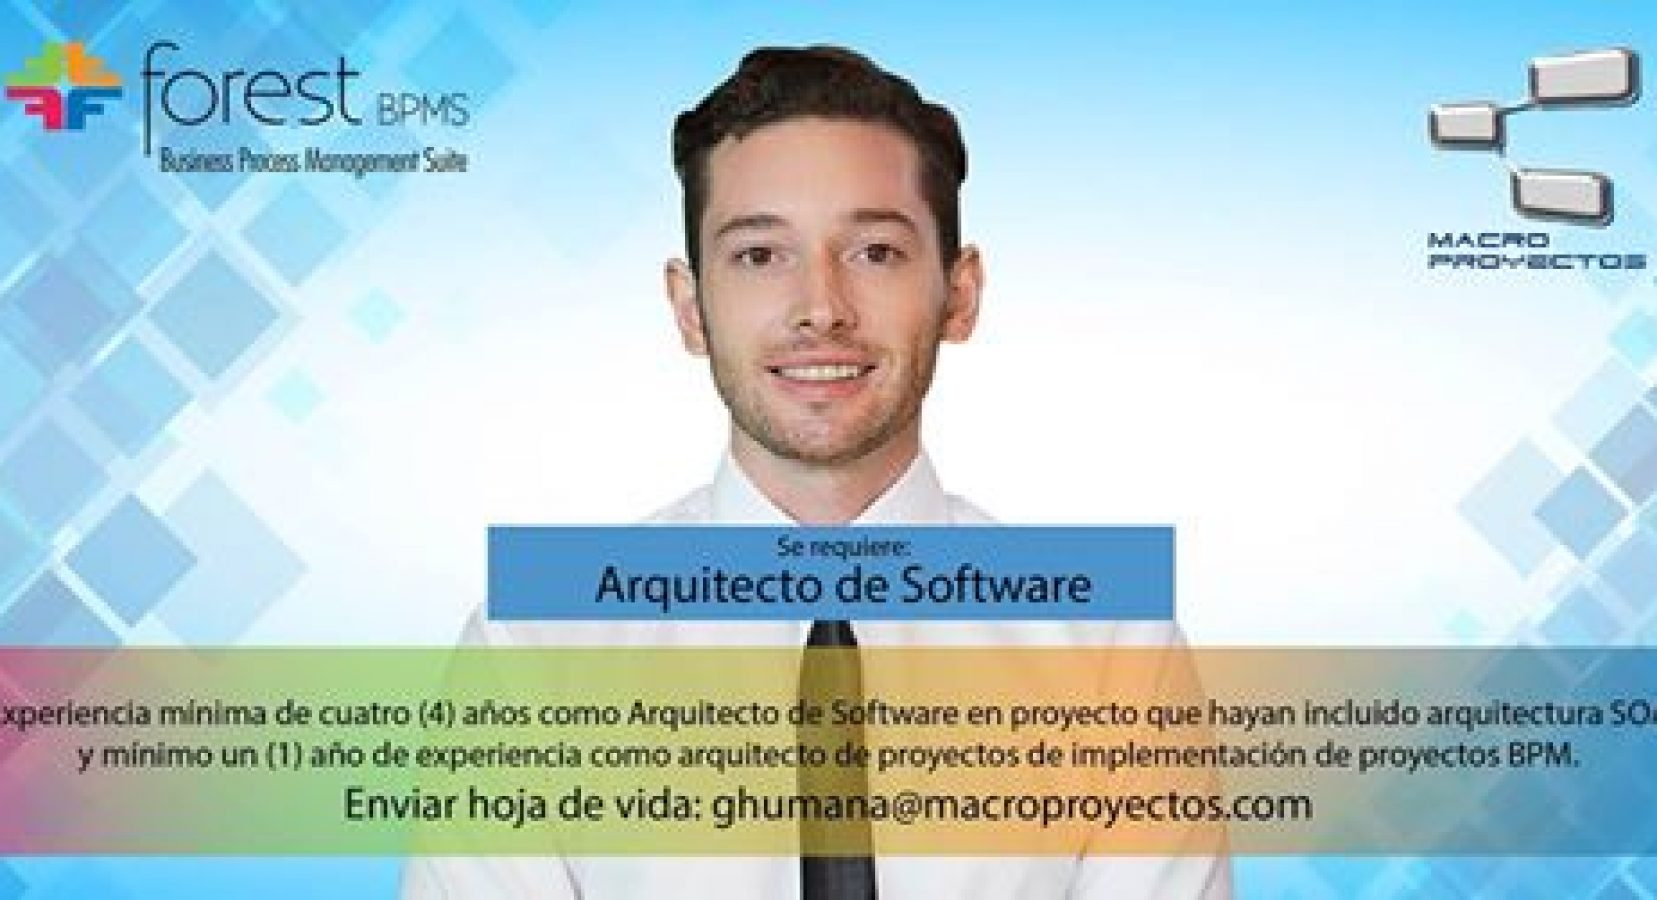 ARQUITECTO DE SOFTWARE